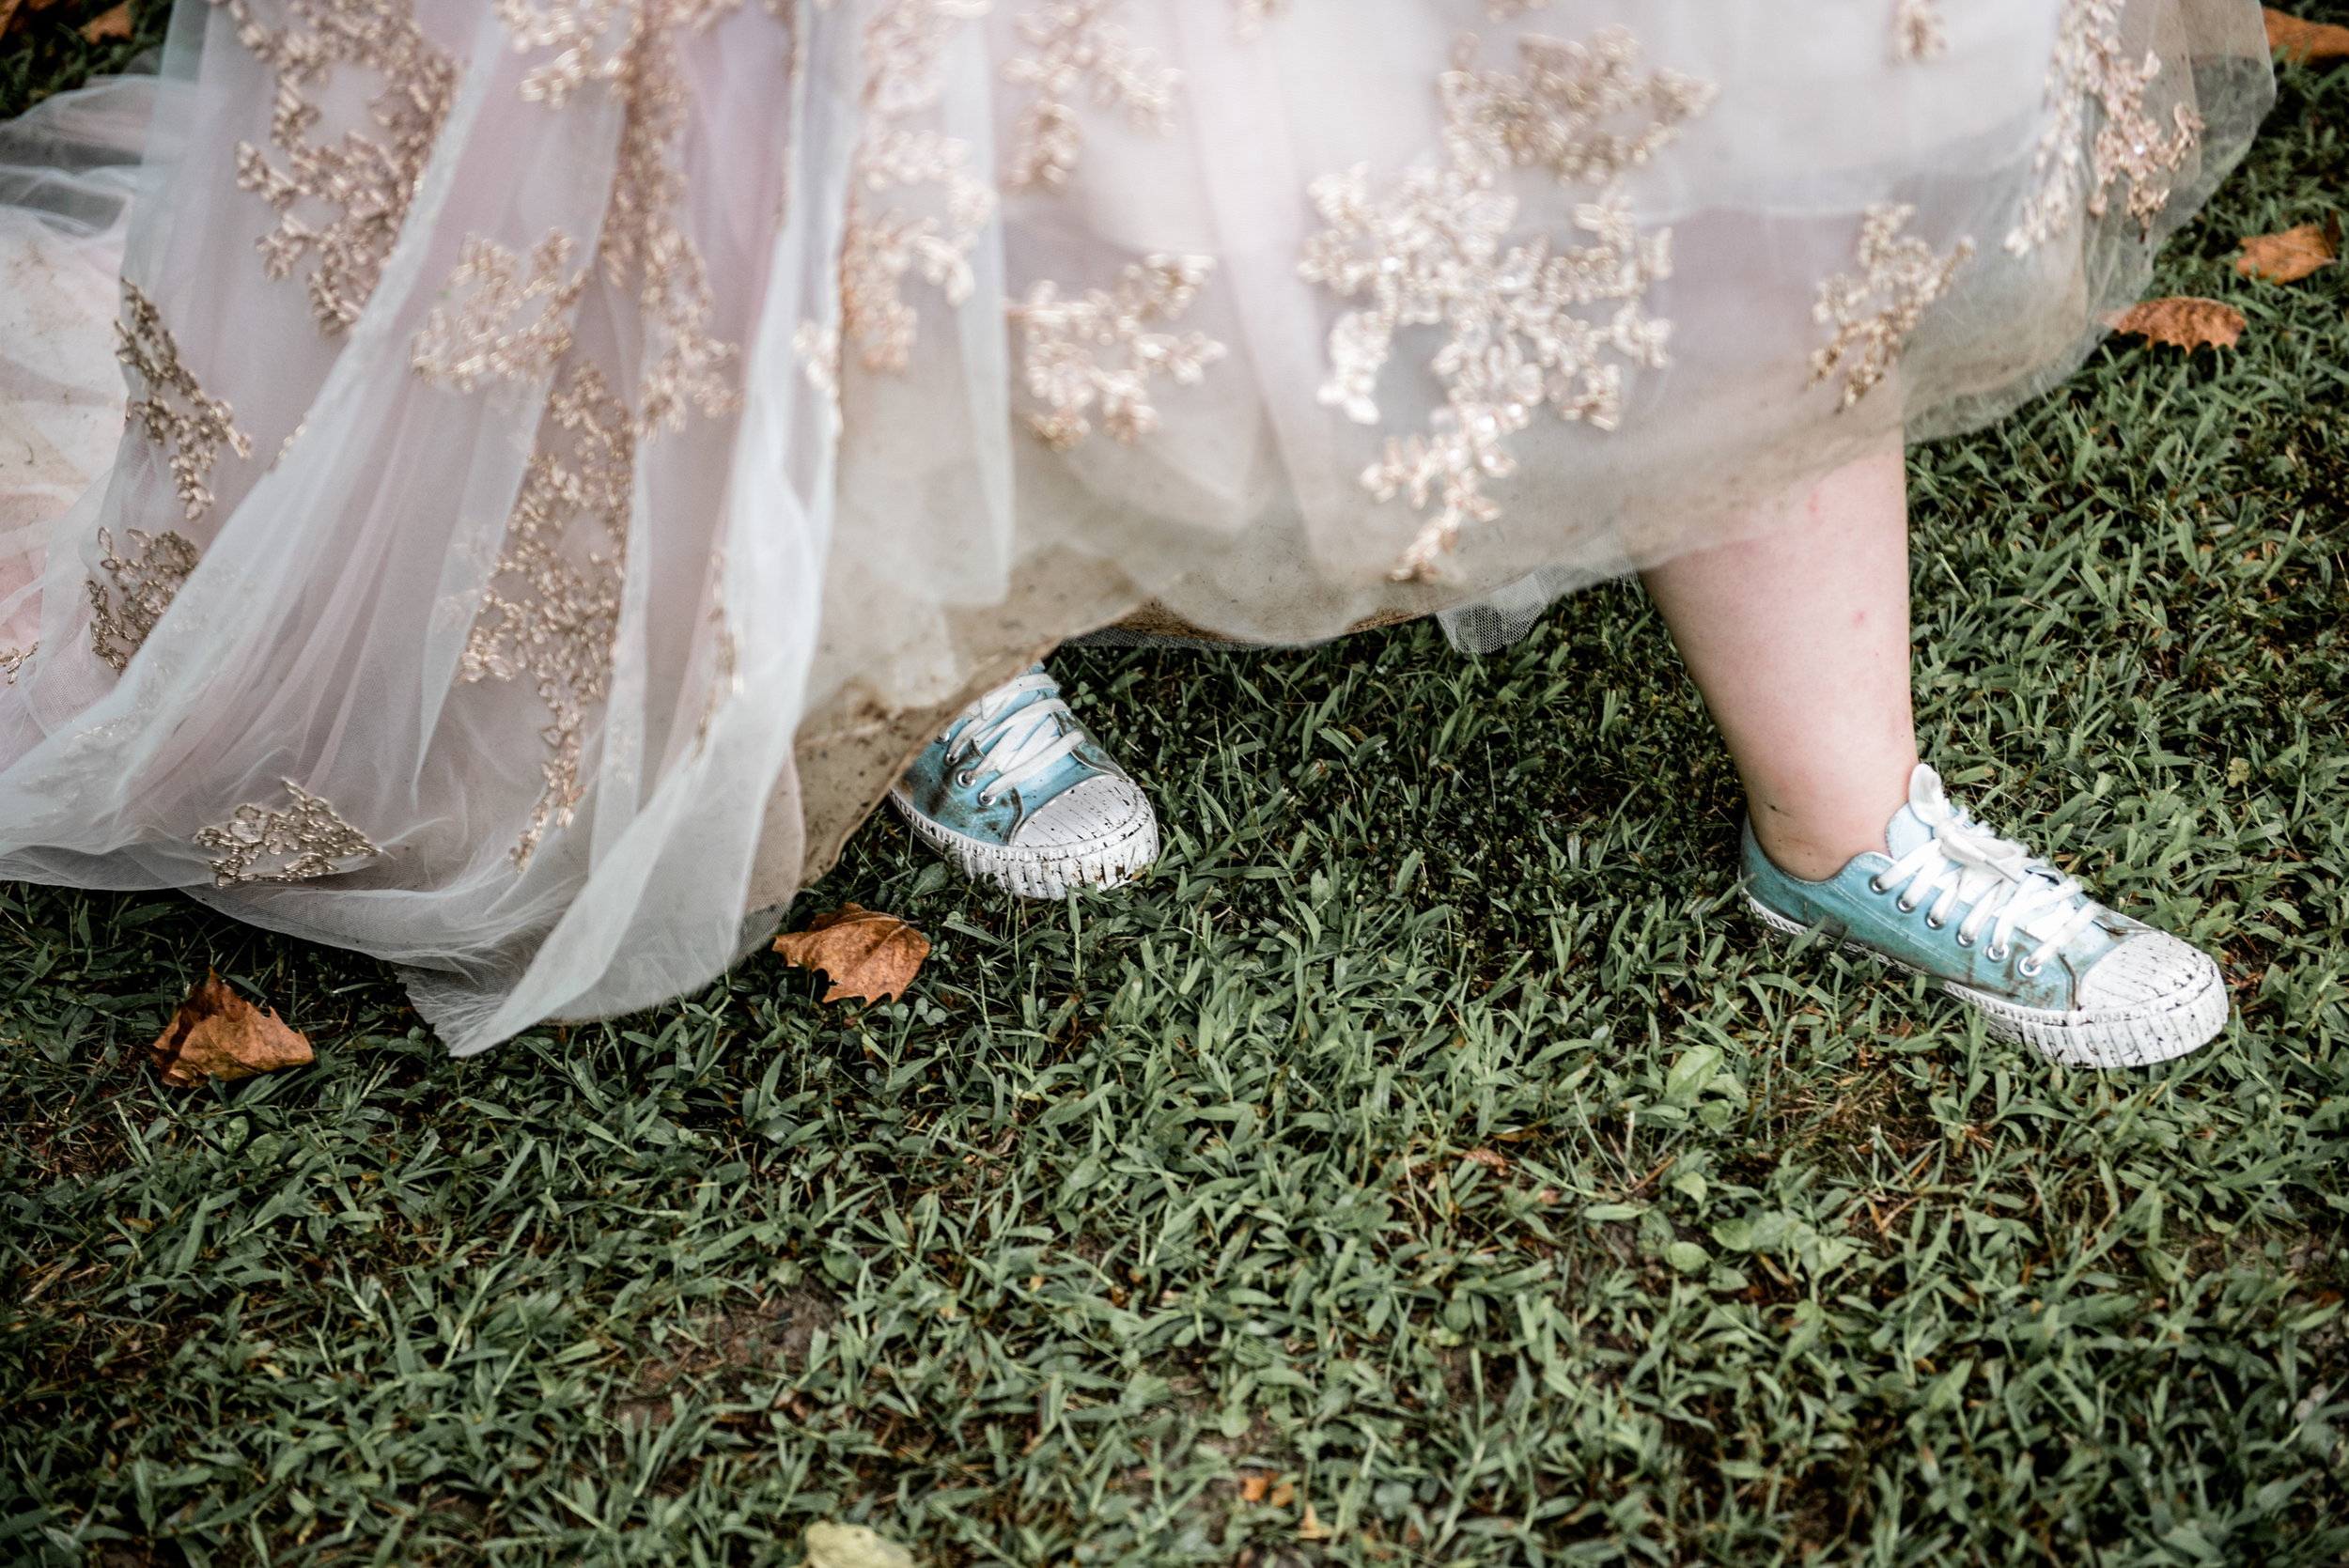 bride strolls across wet grass wearing sneakers and wedding gown